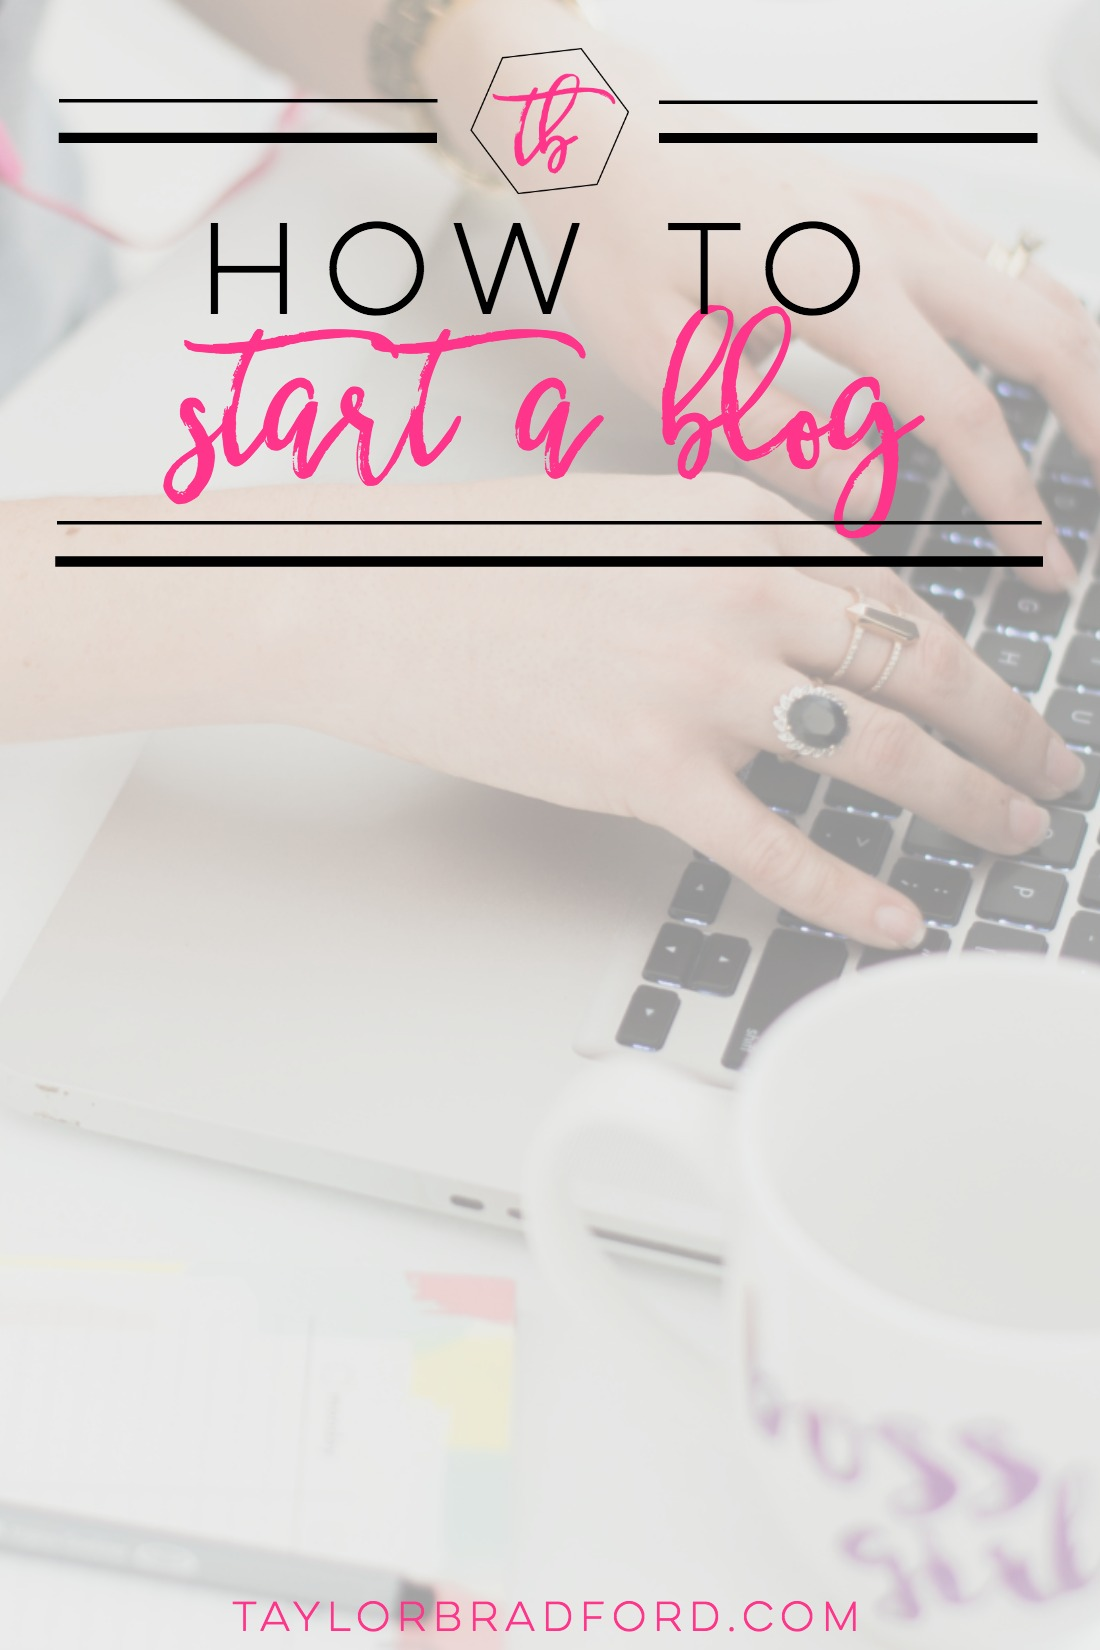 Find out all the steps necessary on how to start a blog! Get ready to jump in with both feet!!